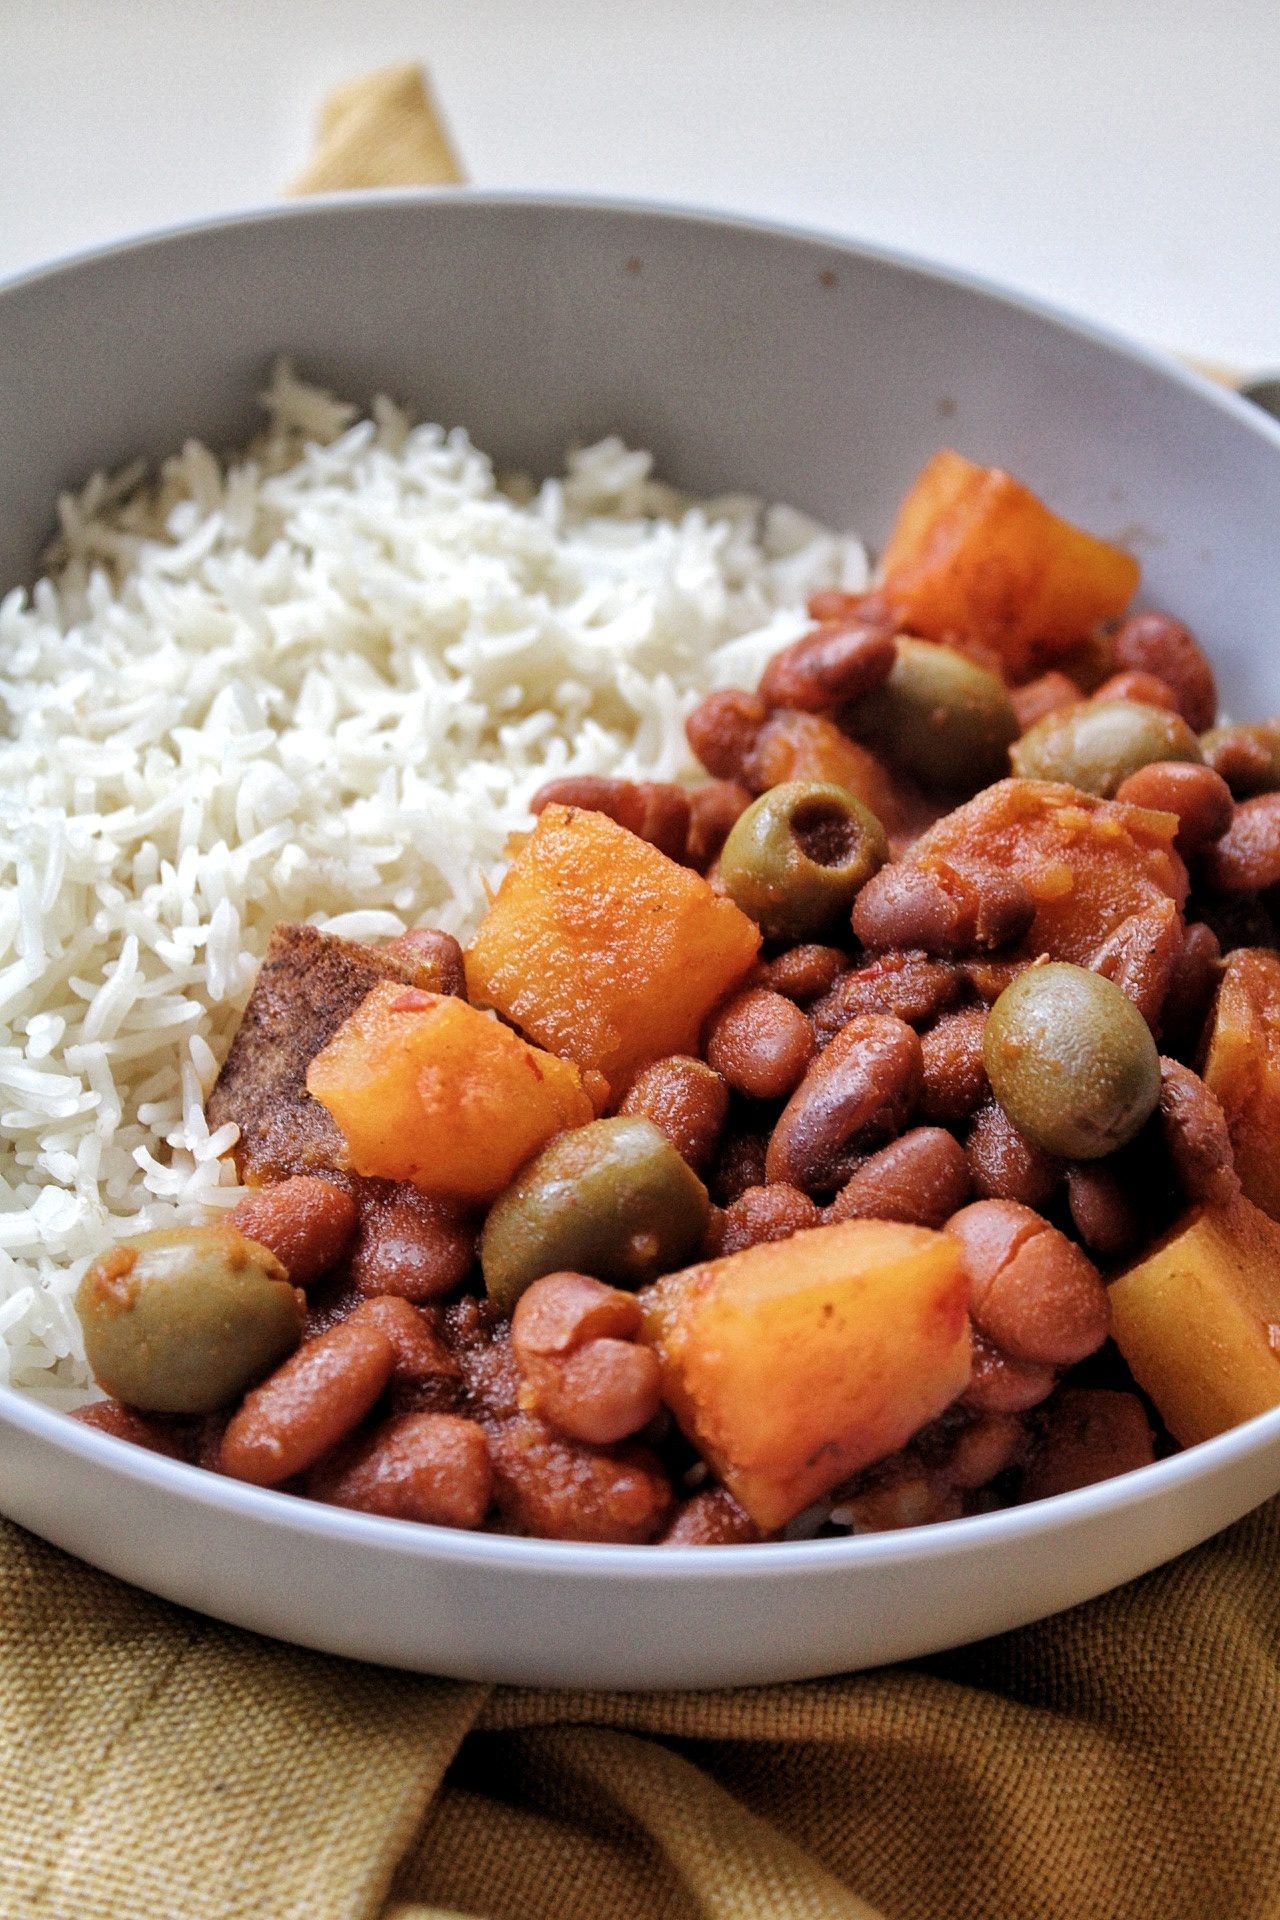 Pinto beans with potatoes and olives with a side of white rice